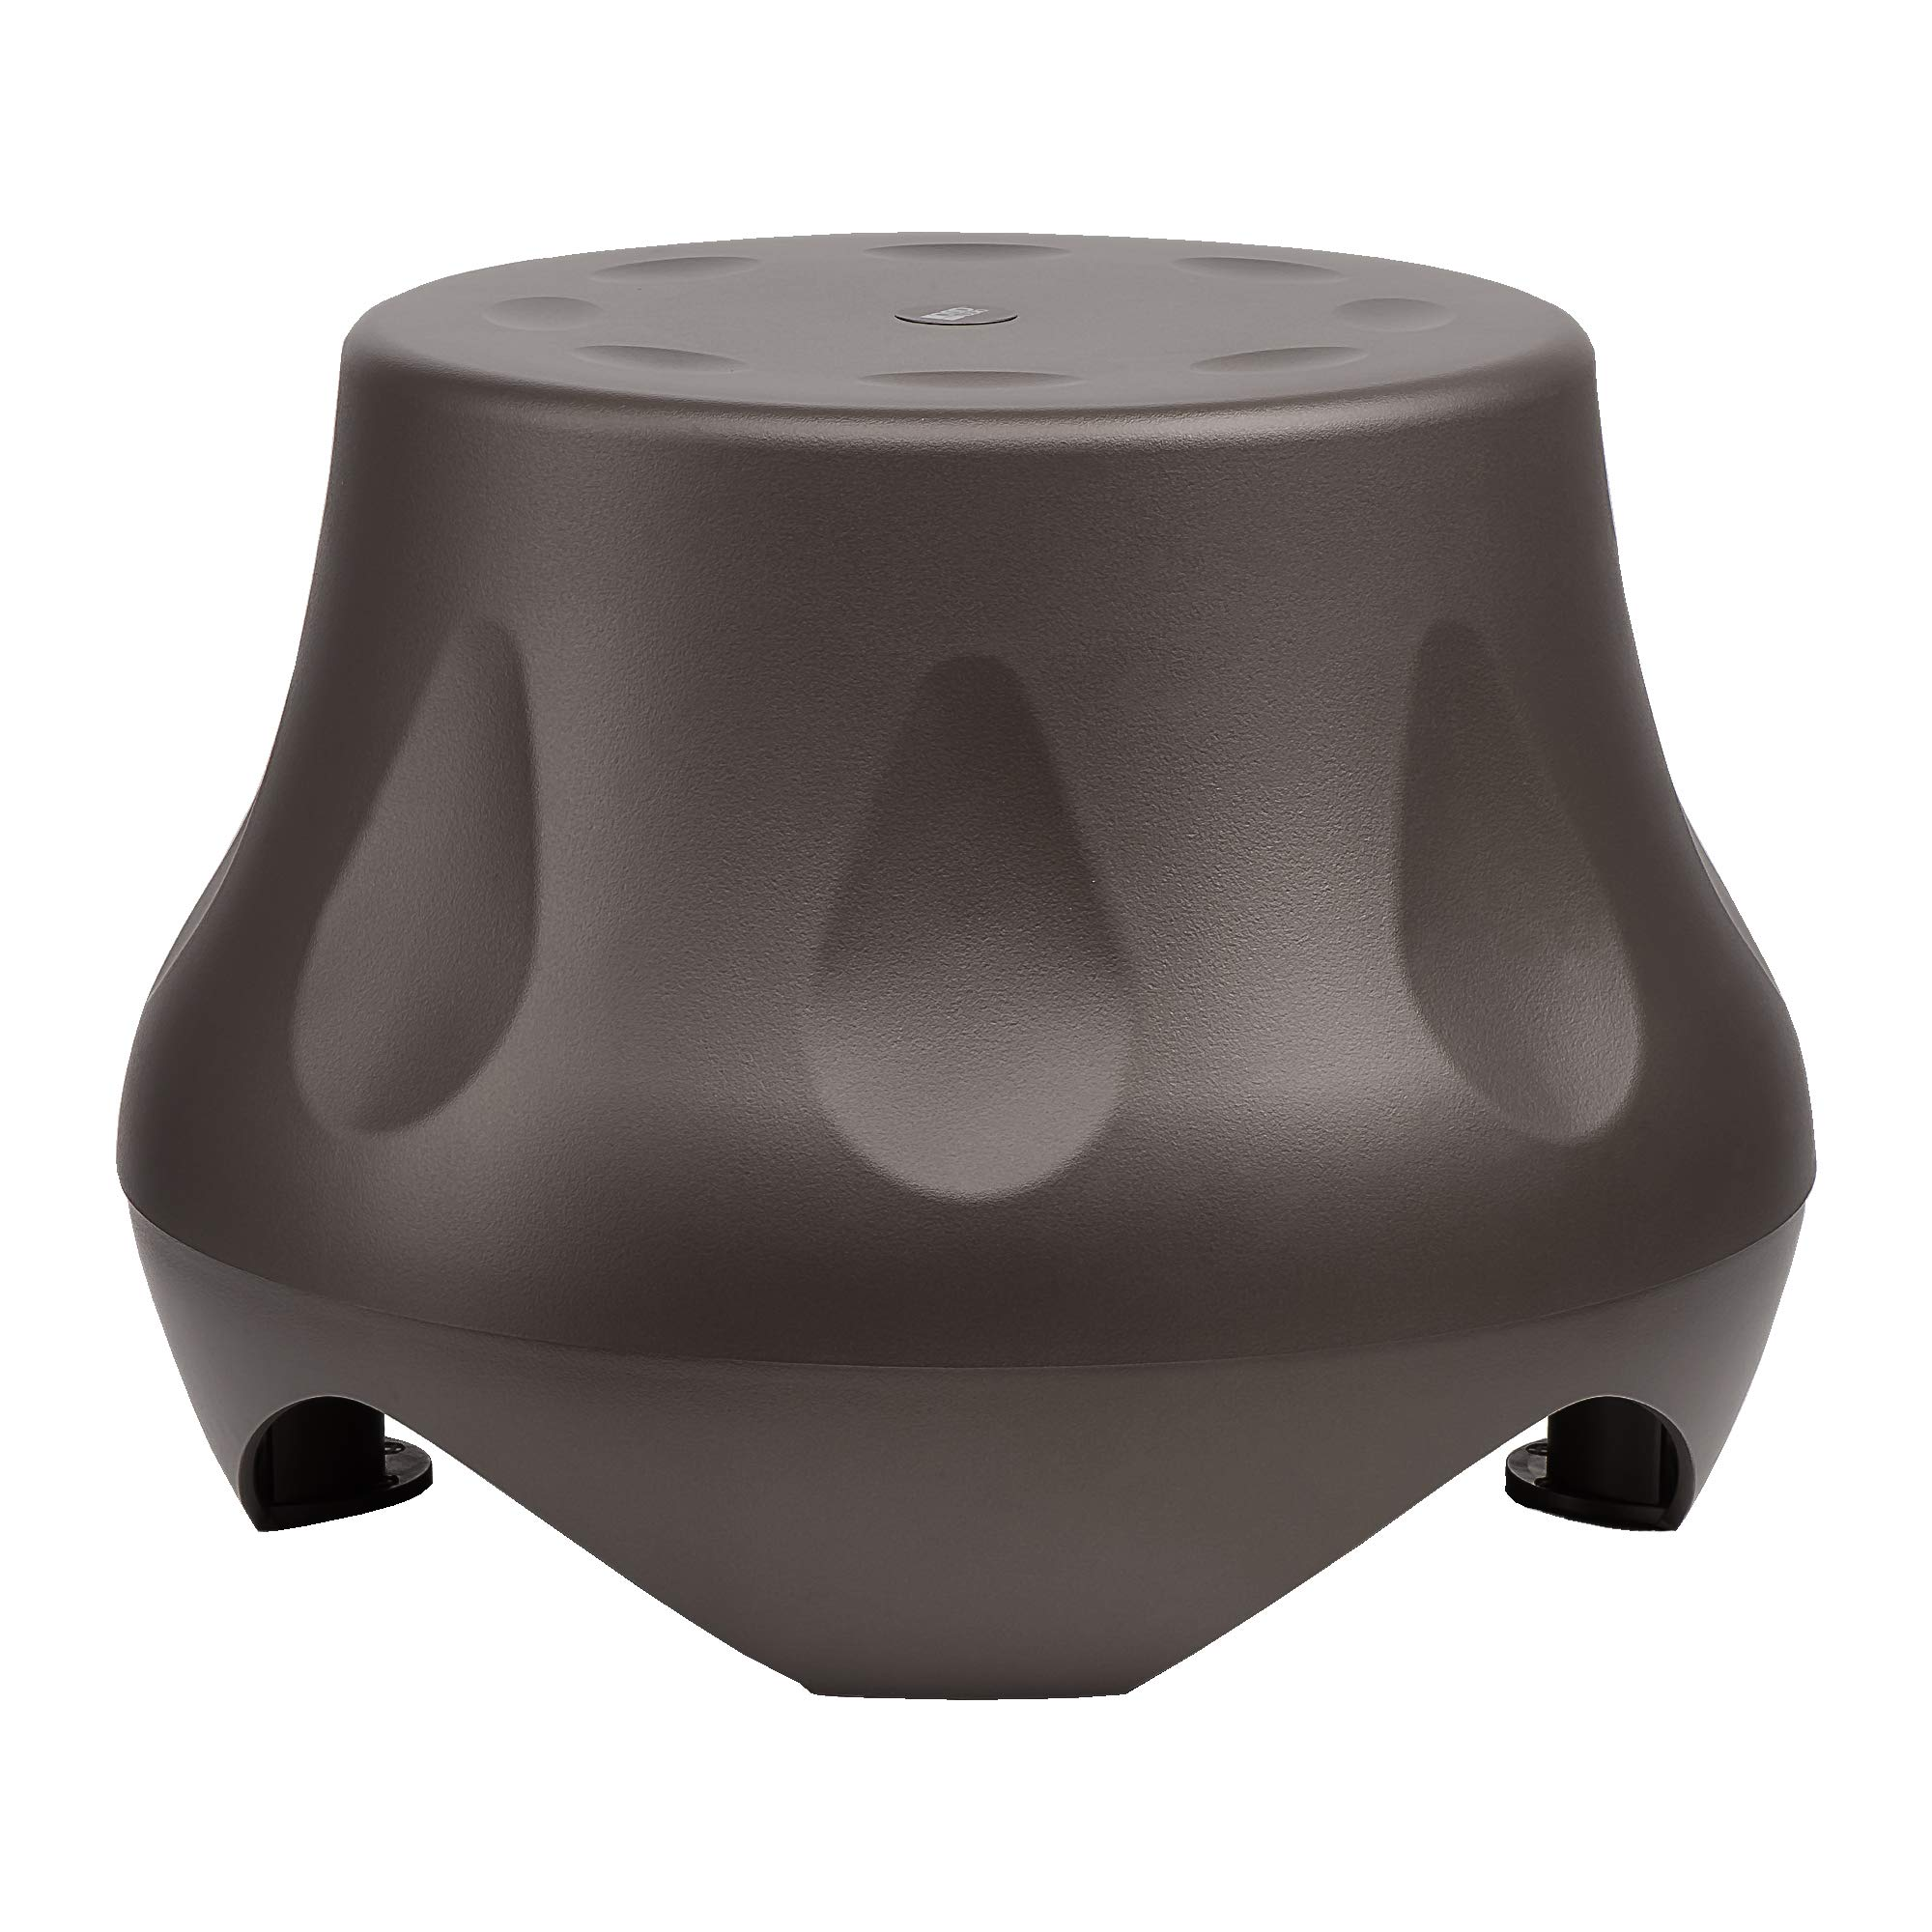 FORZA-10 10'' Weather-Resistant Outdoor Subwoofer, 300W by OSD Audio